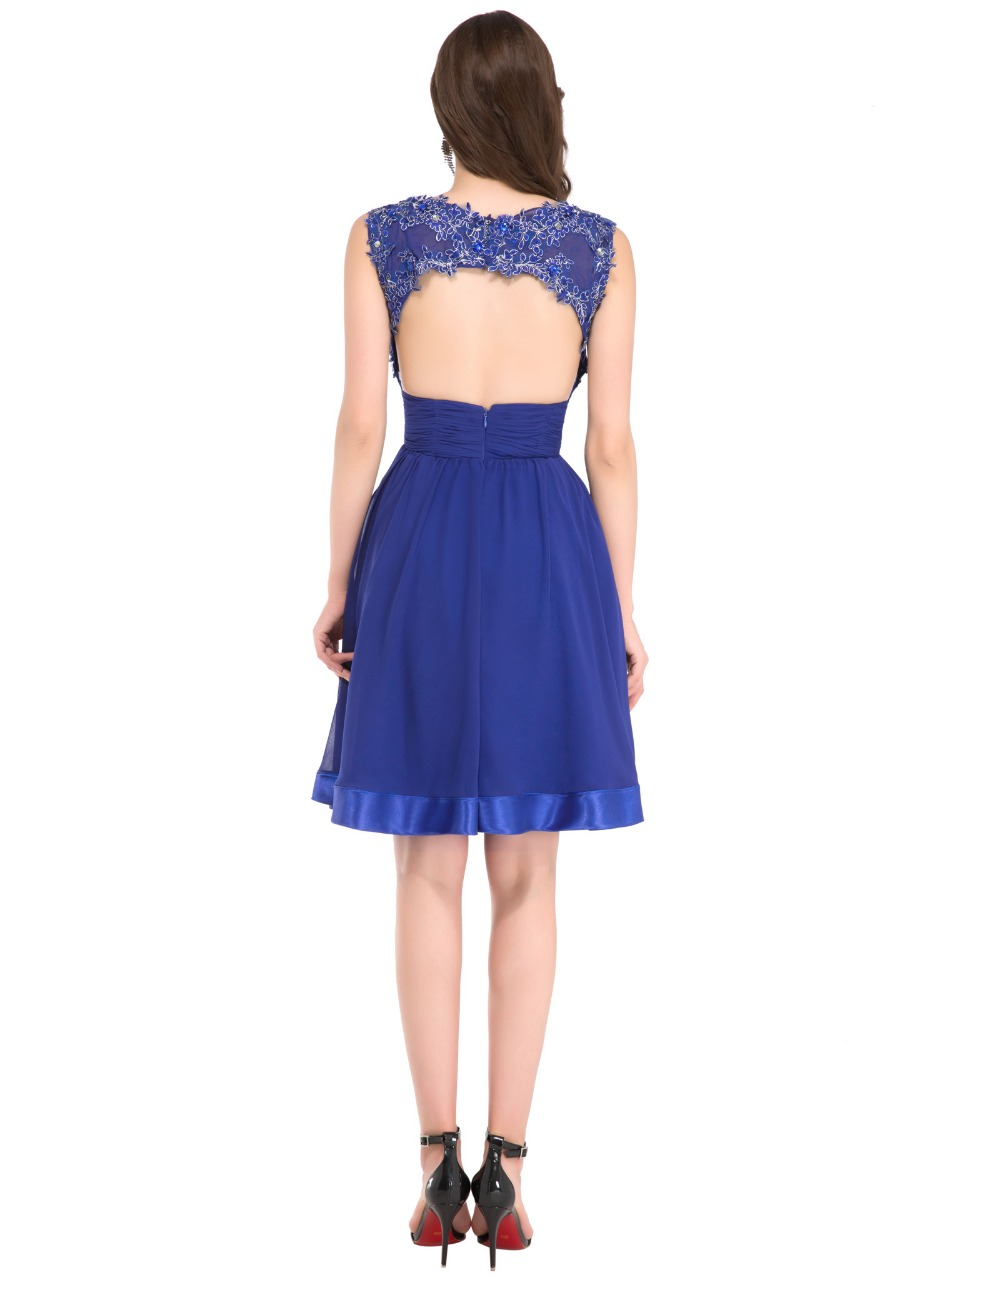 New Cap Sleeve Cocktail Dress Knee Length Lace Applique Blue Short ...